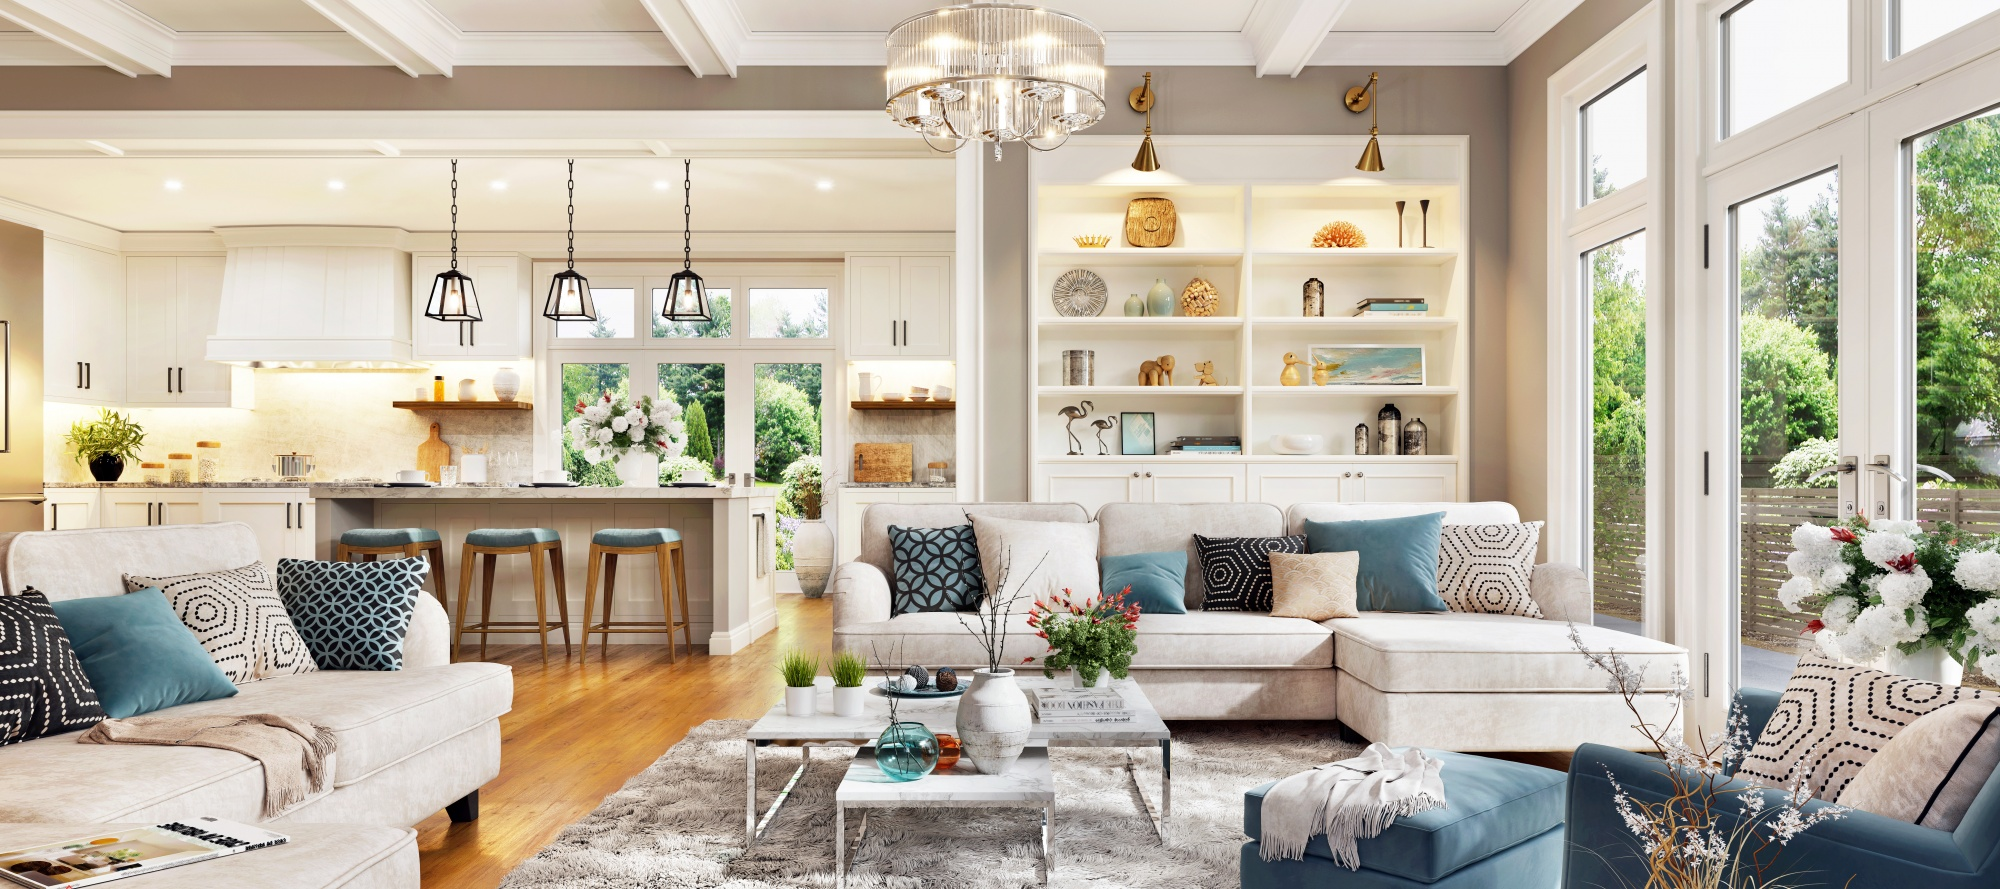 top 10 home décor items you need now, blogger favorites, home décor